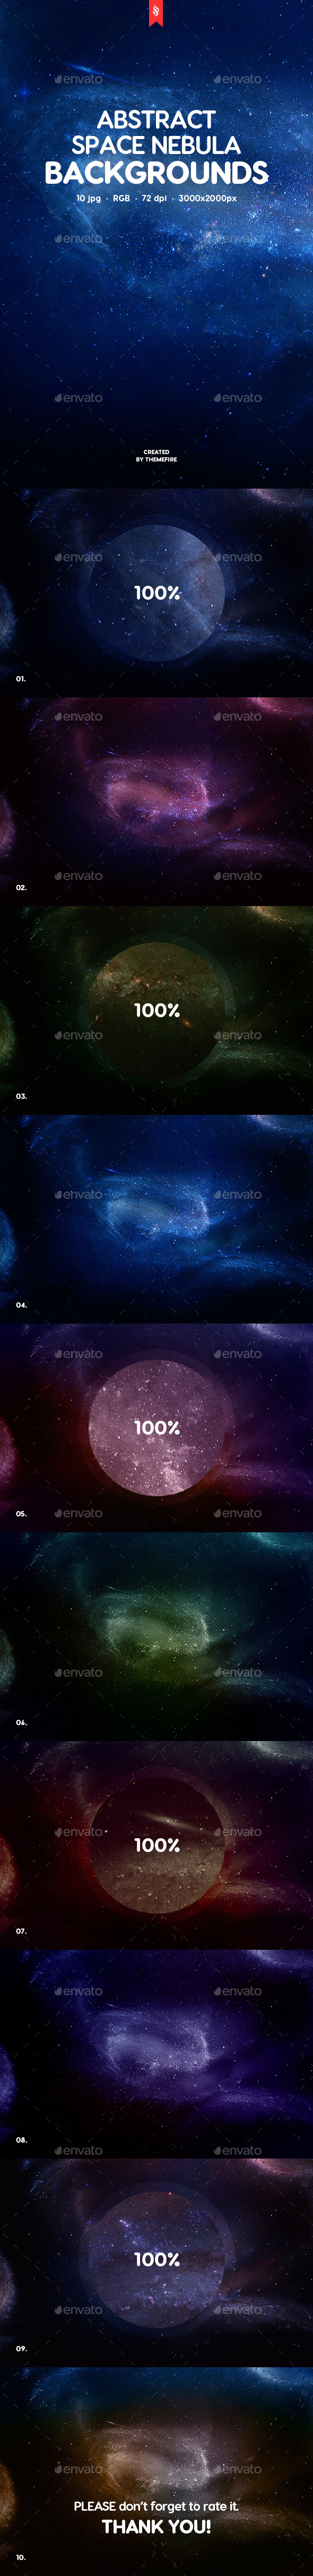 Abstract Space Nebula Backgrounds - Abstract Backgrounds